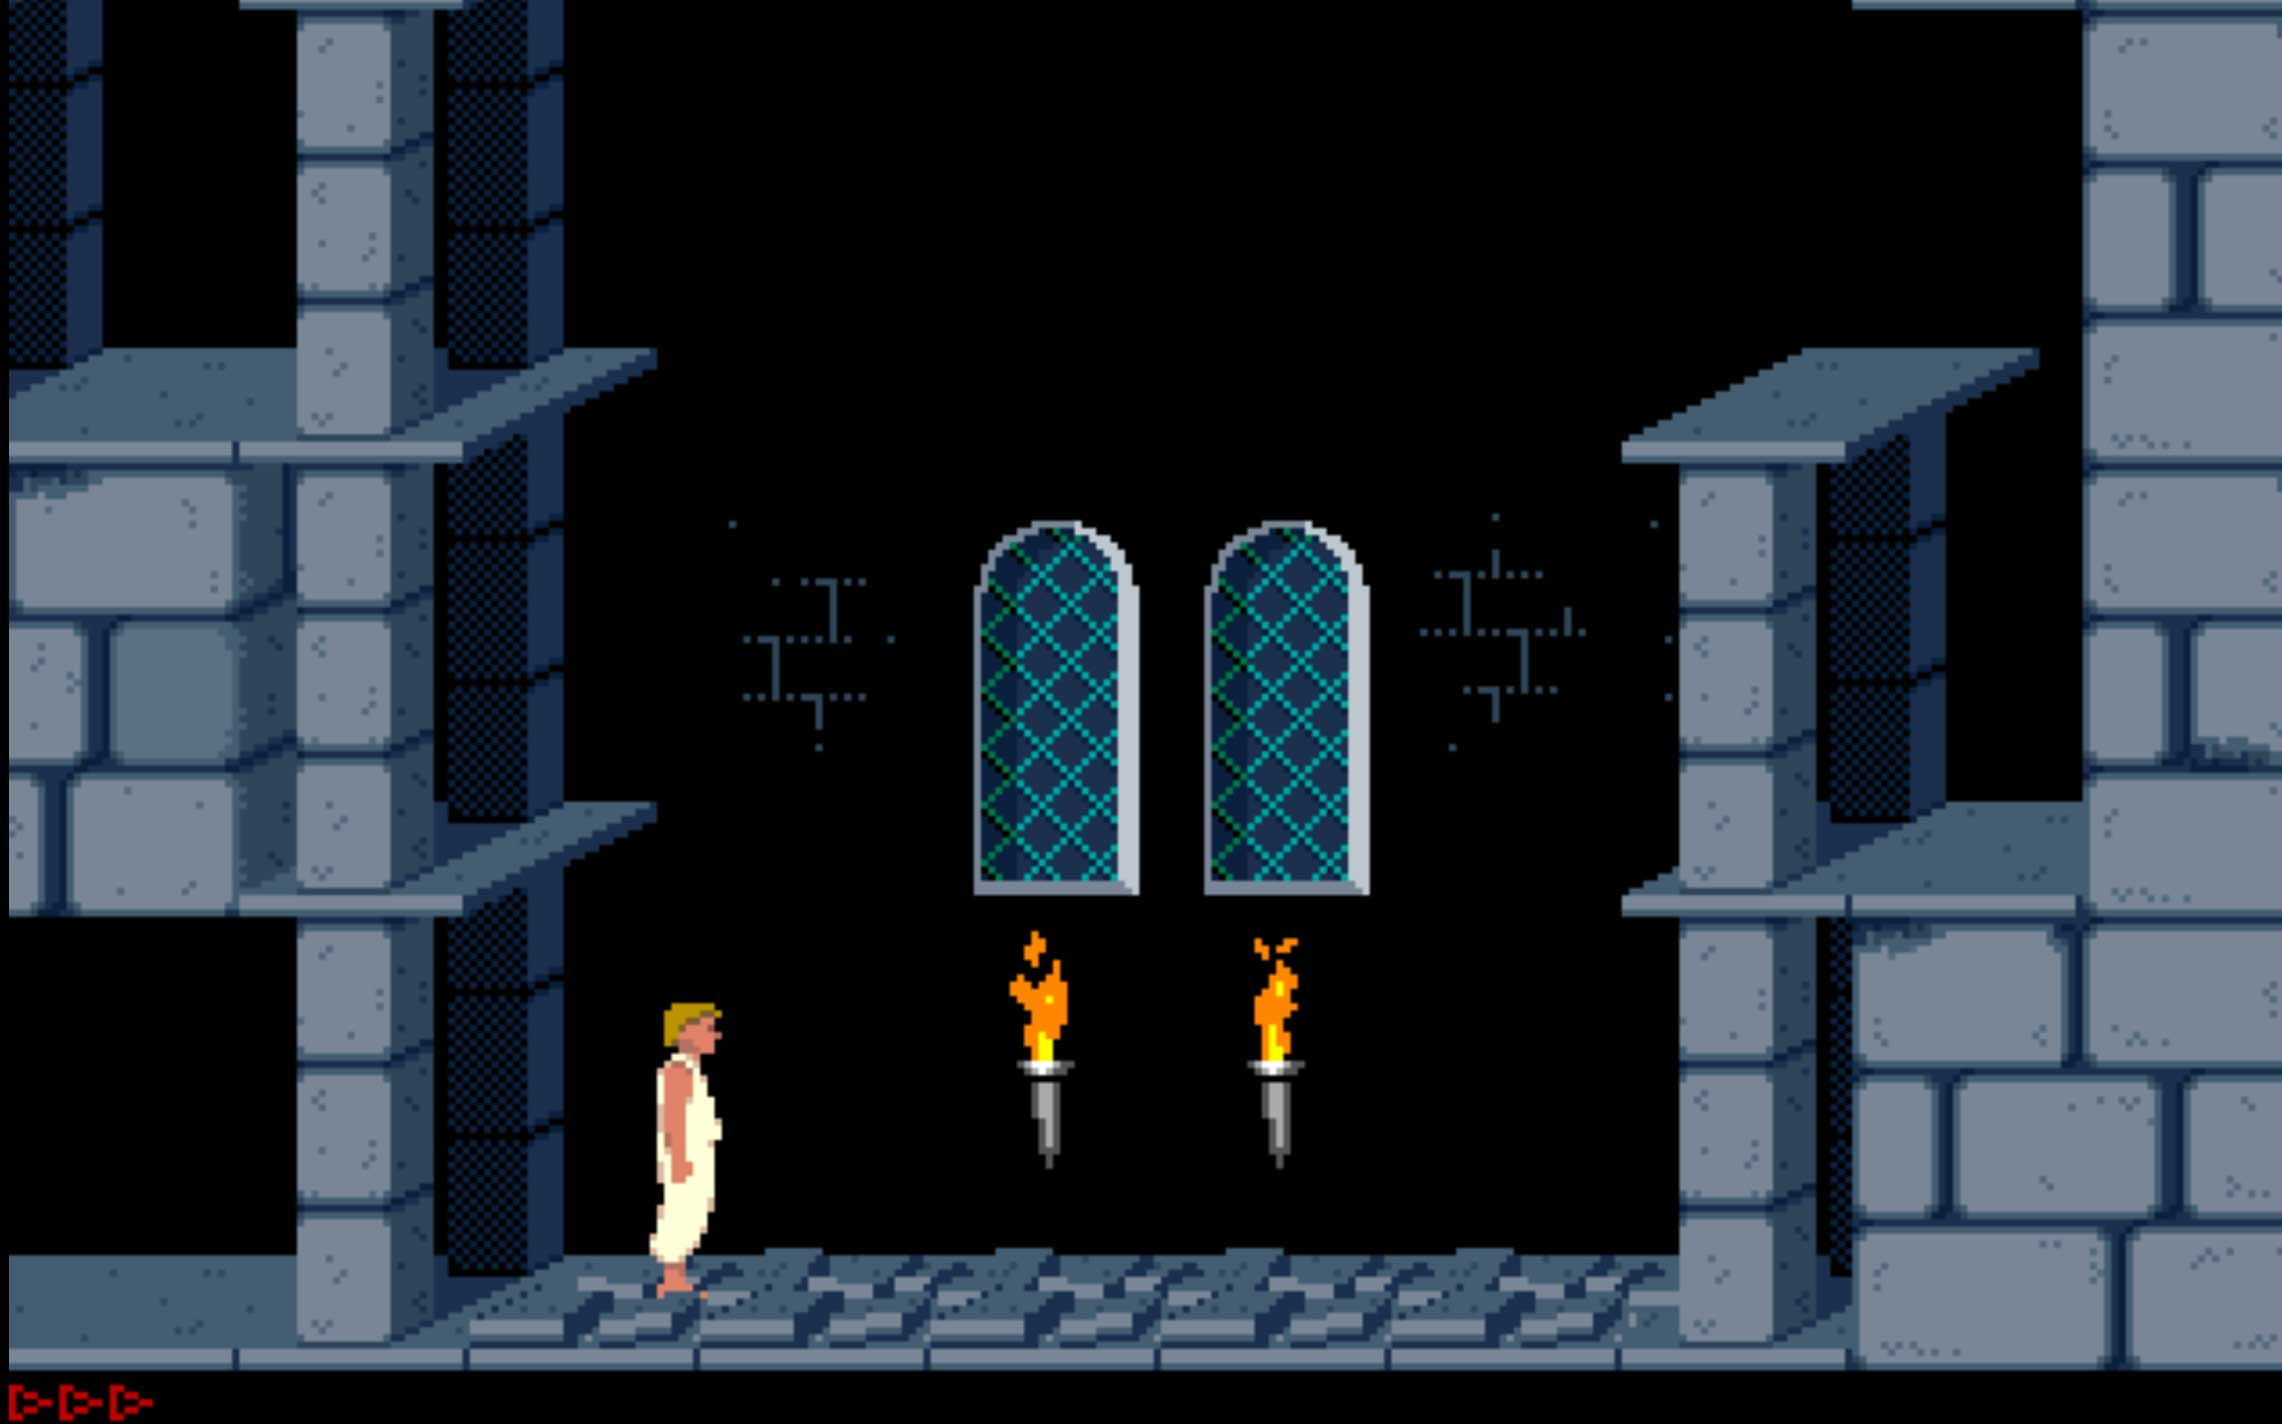 4D Prince of Persia (1994)                                                               Children of the 1990s will fondly recall this run-and-jump platformer as a top-notch adventure game, with great graphics and gameplay — and it has infinite lives. Score!